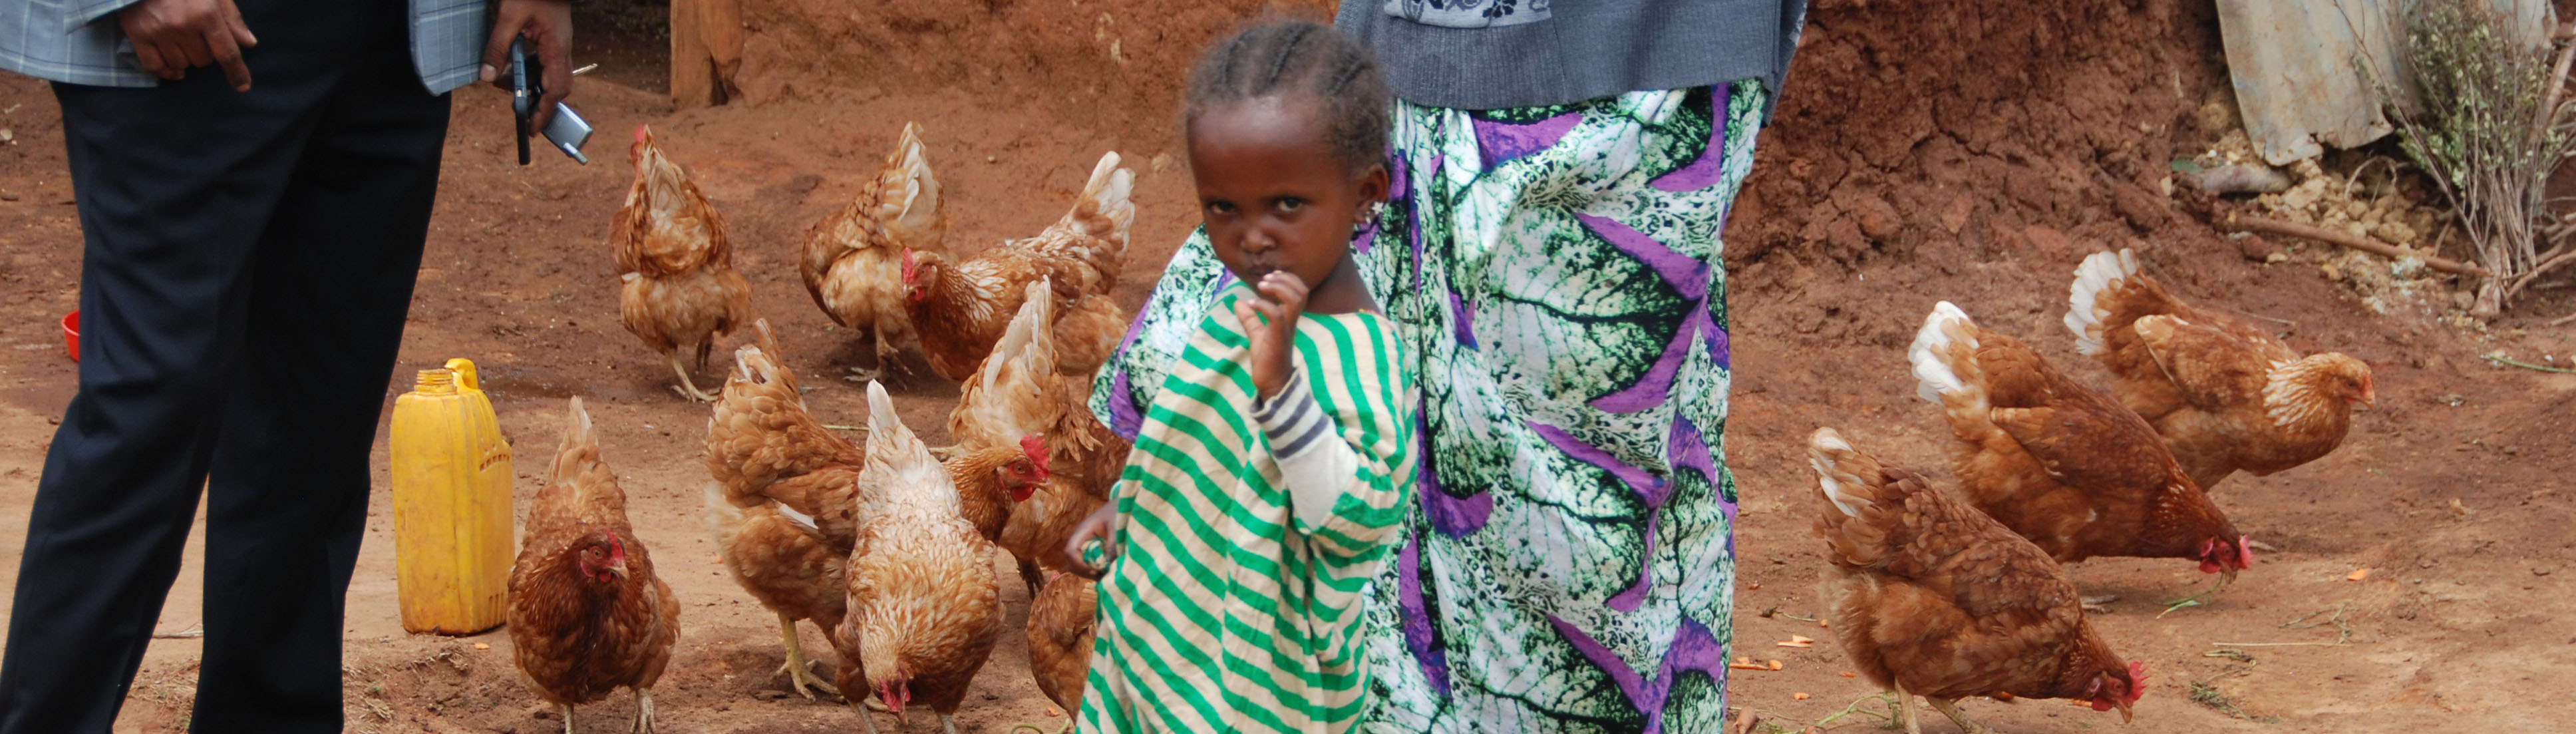 Ethiopian girl with chickens